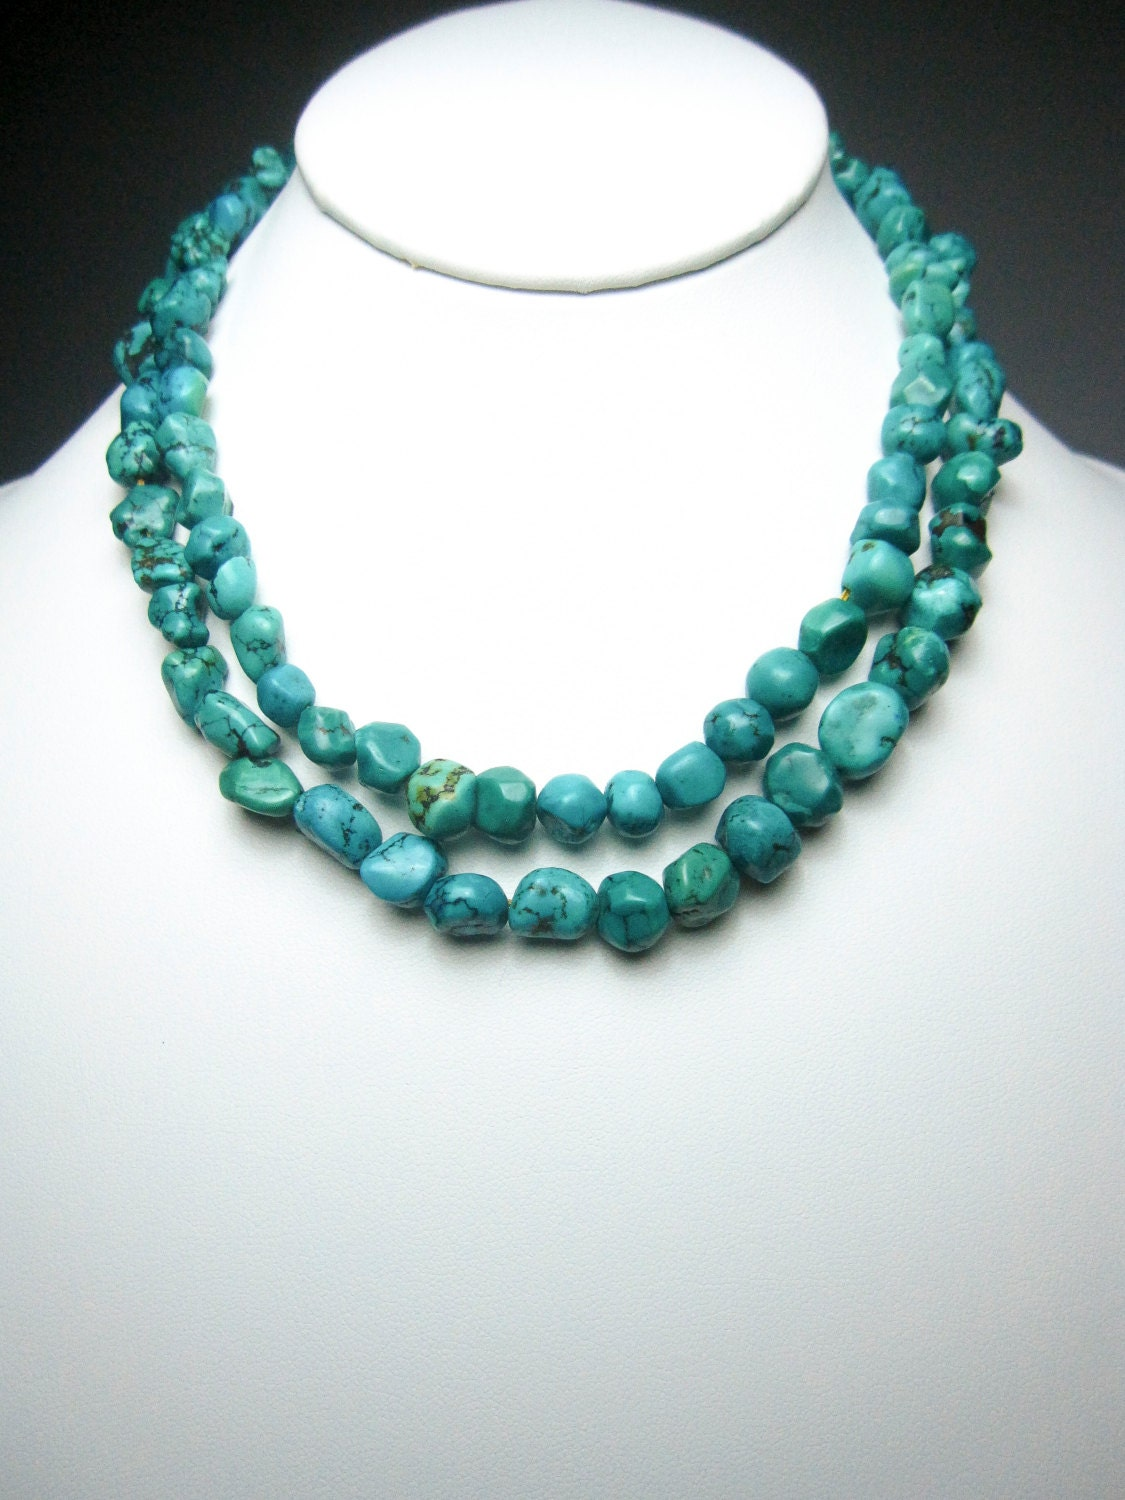 genuine turquoise jewelry natural turquoise necklace healing